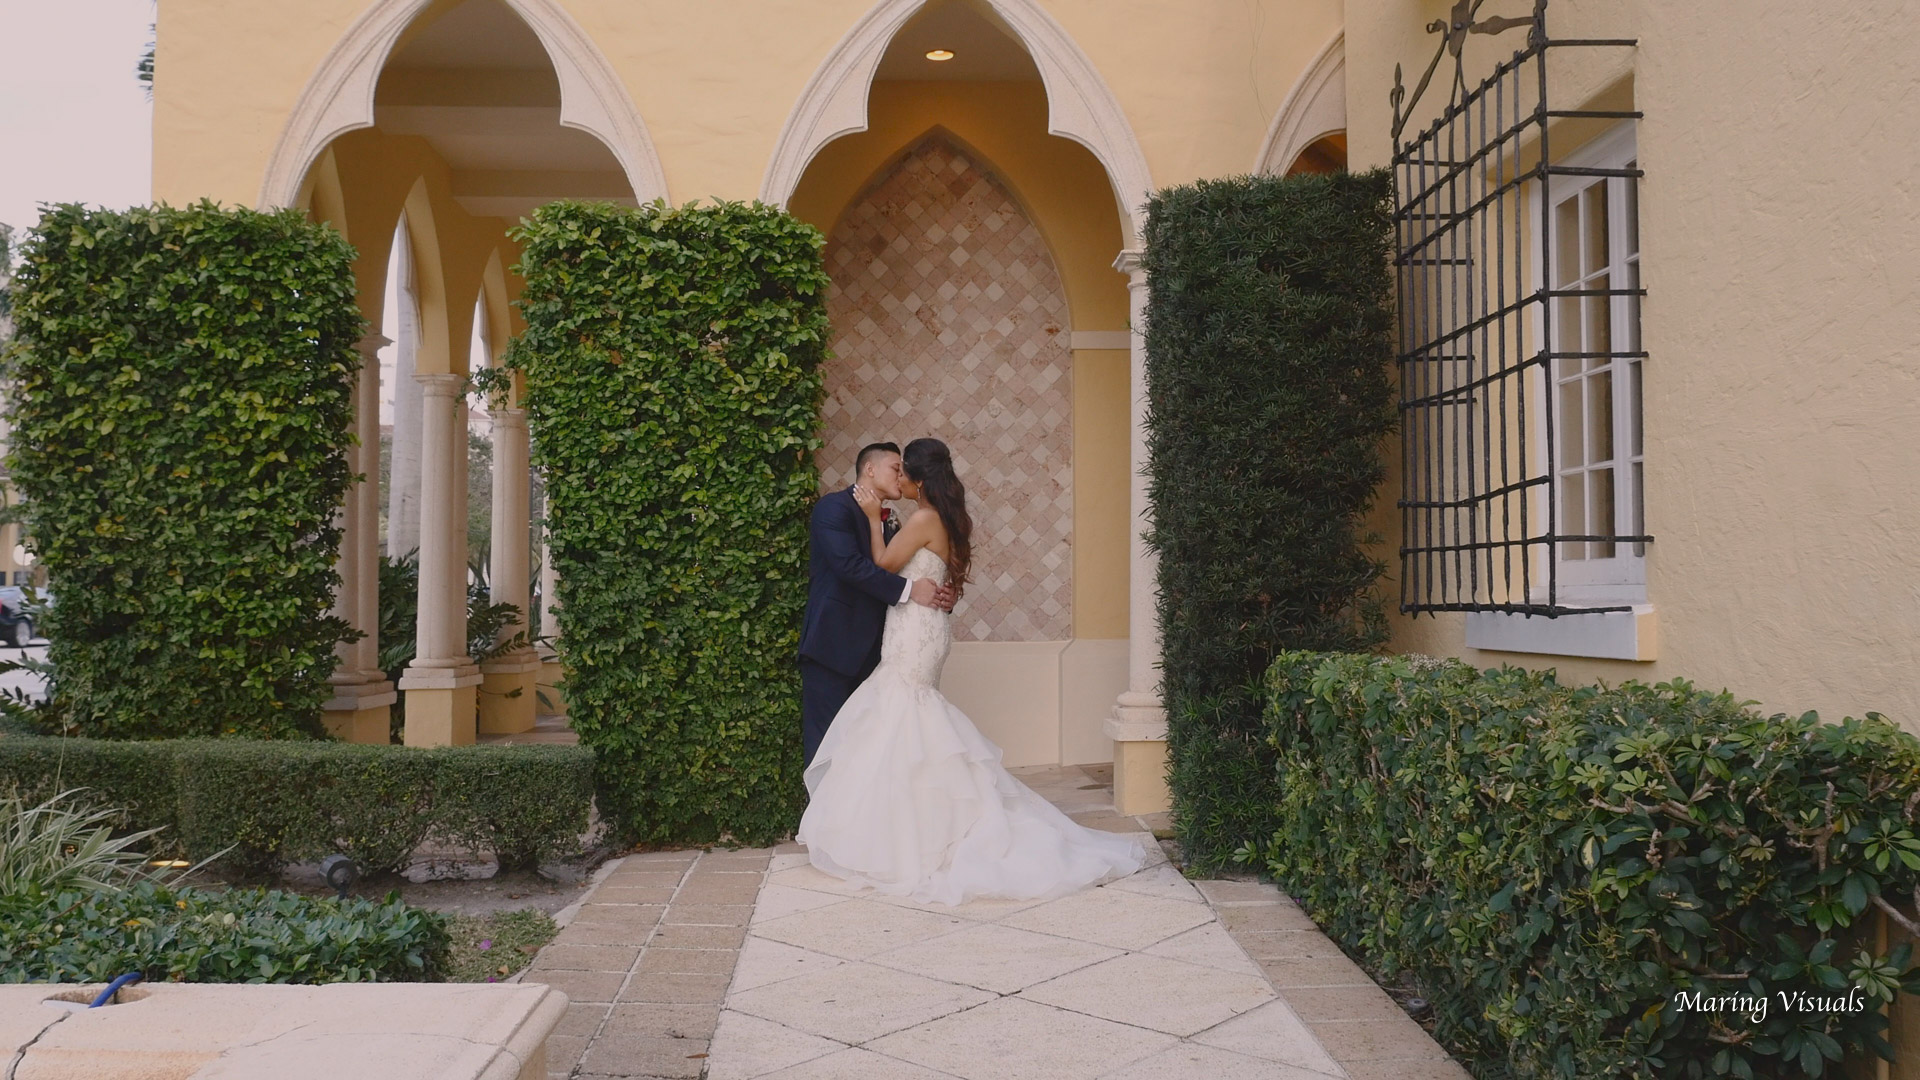 Wedding at The Addison Boca Raton 37.jpg